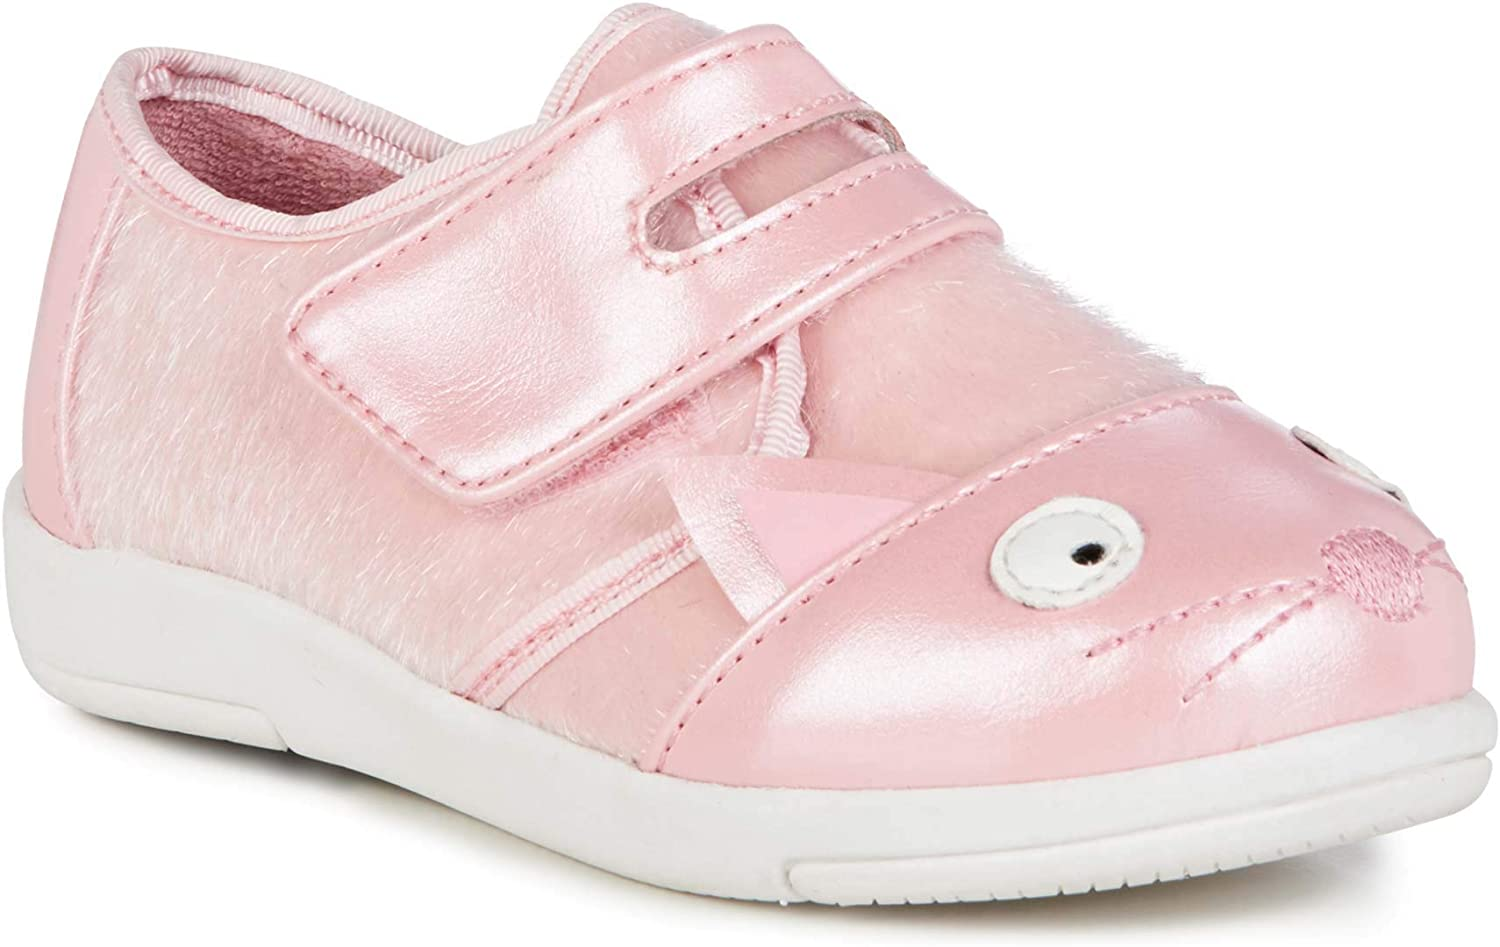 EMU Australia Kids Womens Kitty Sneakers Toddler//Little Kid//Big Kid